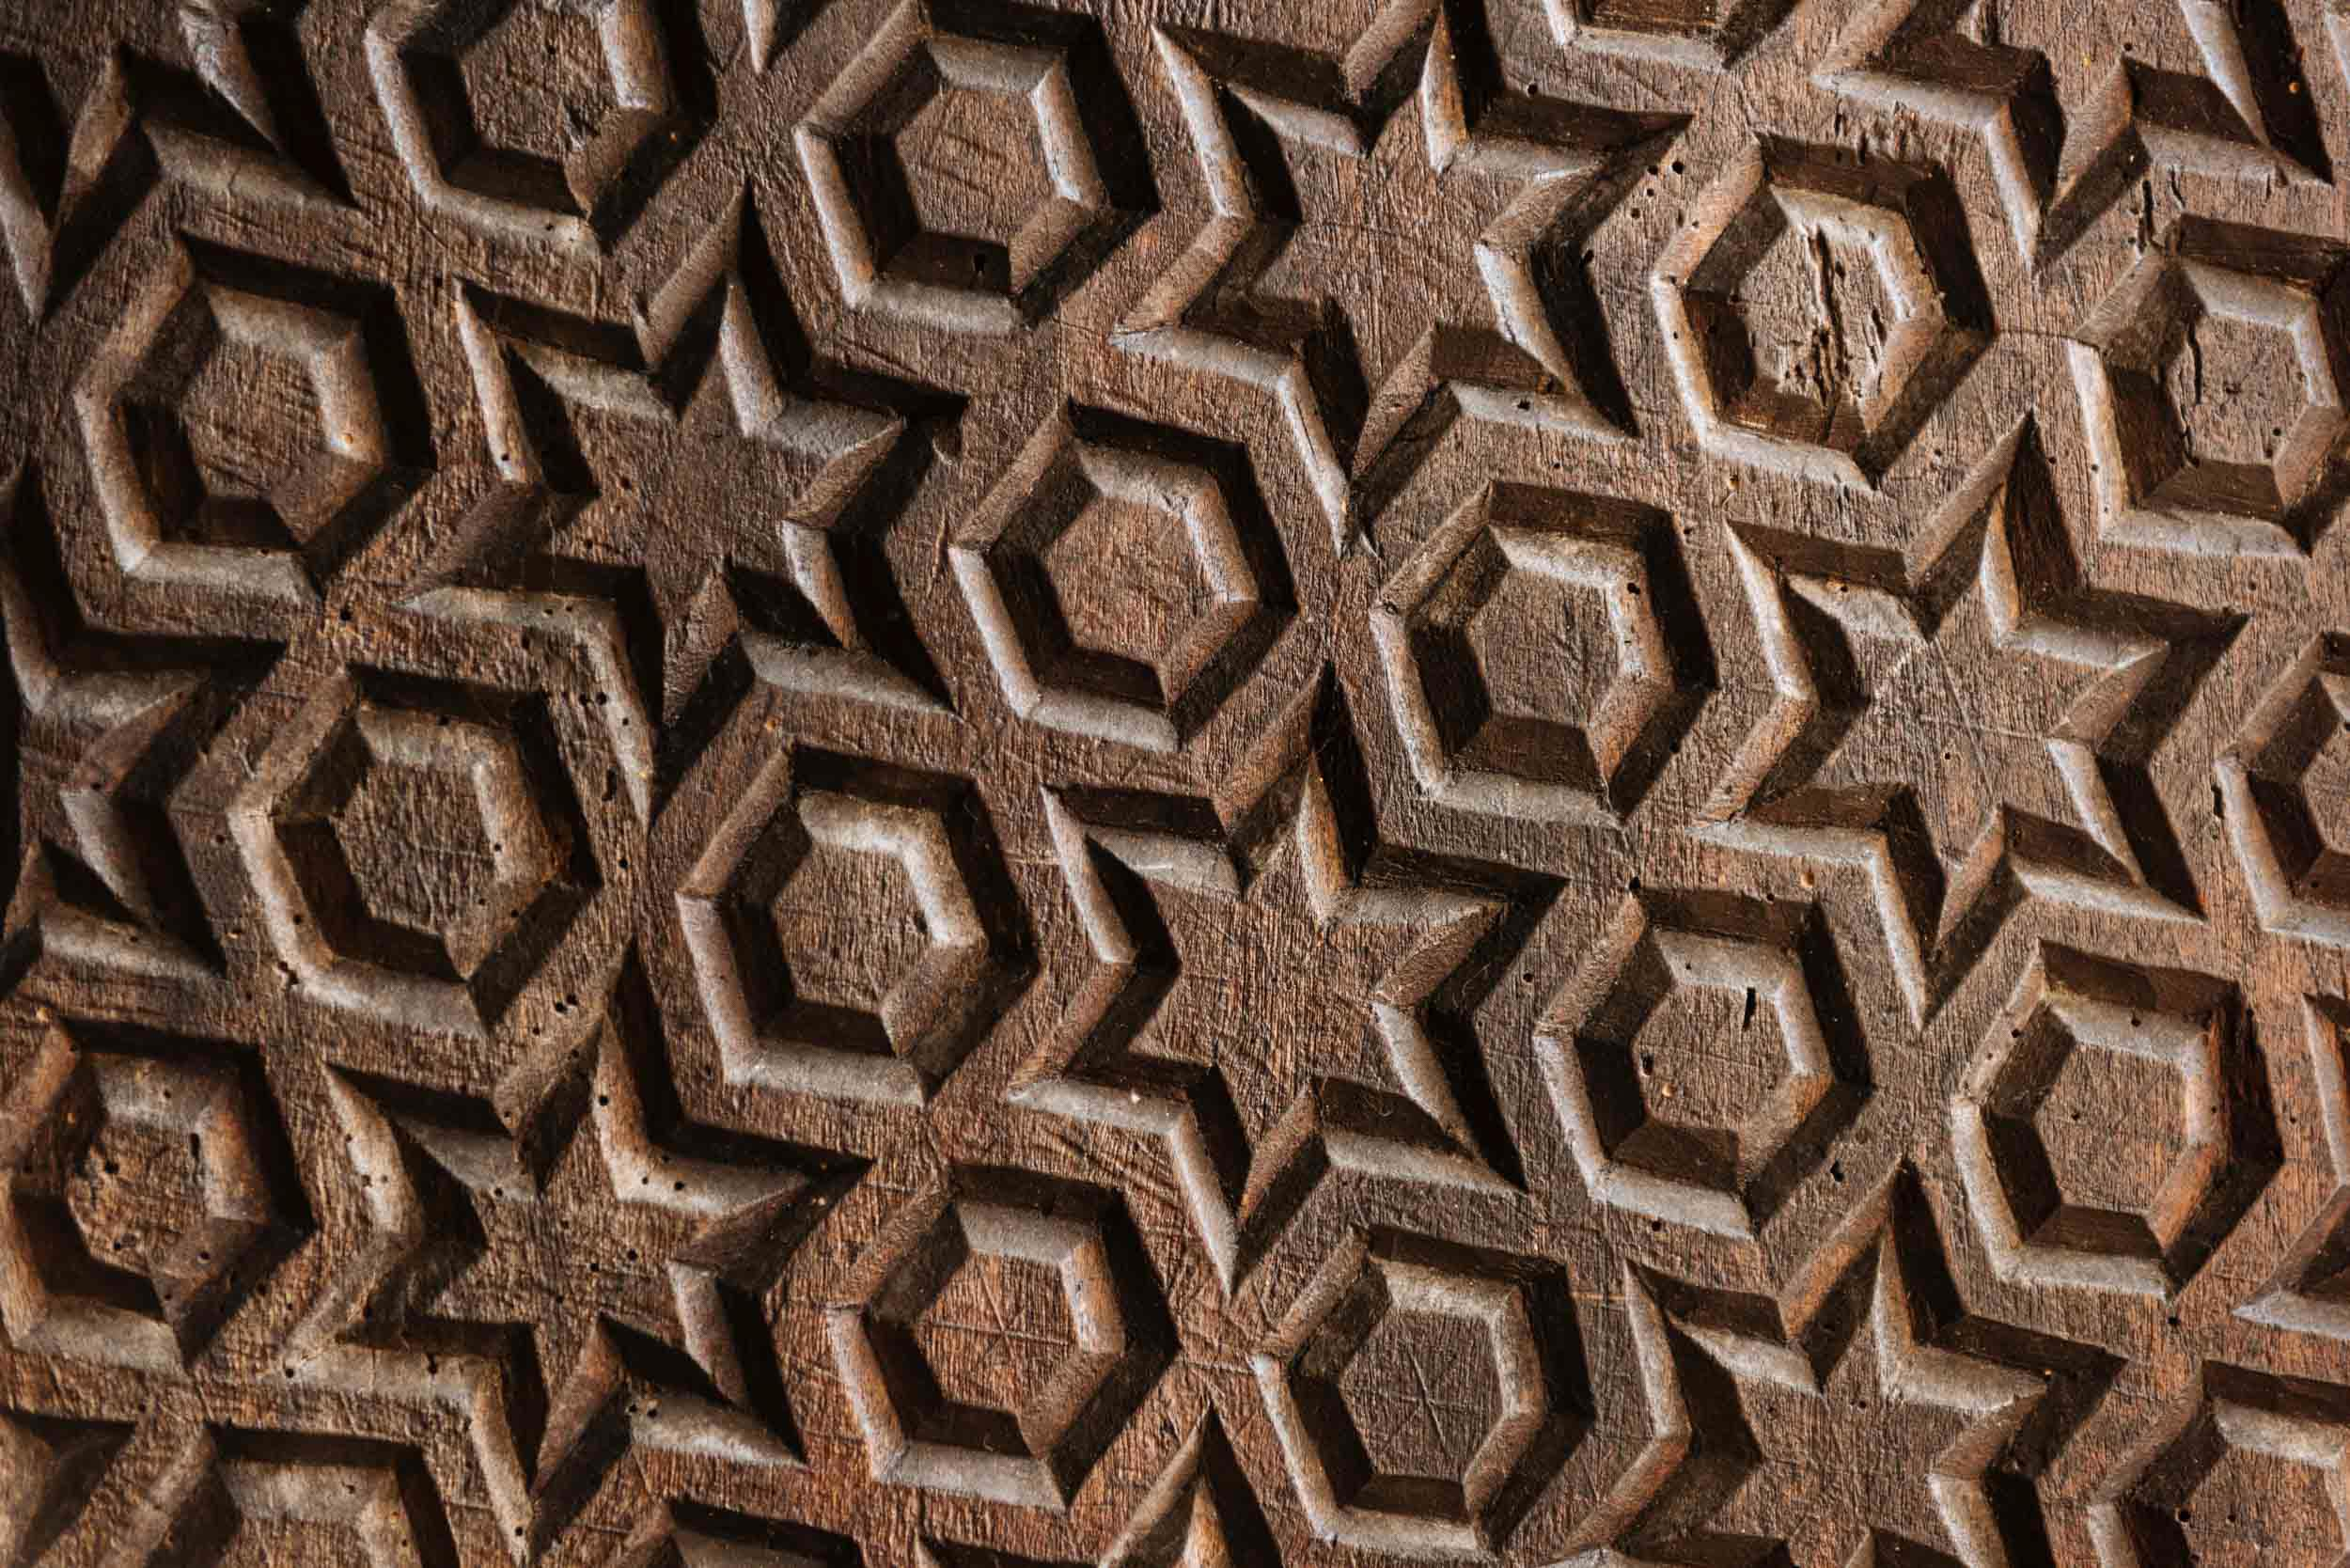 detail-tradition-pocitelj-wood-bosnia-hercegovina